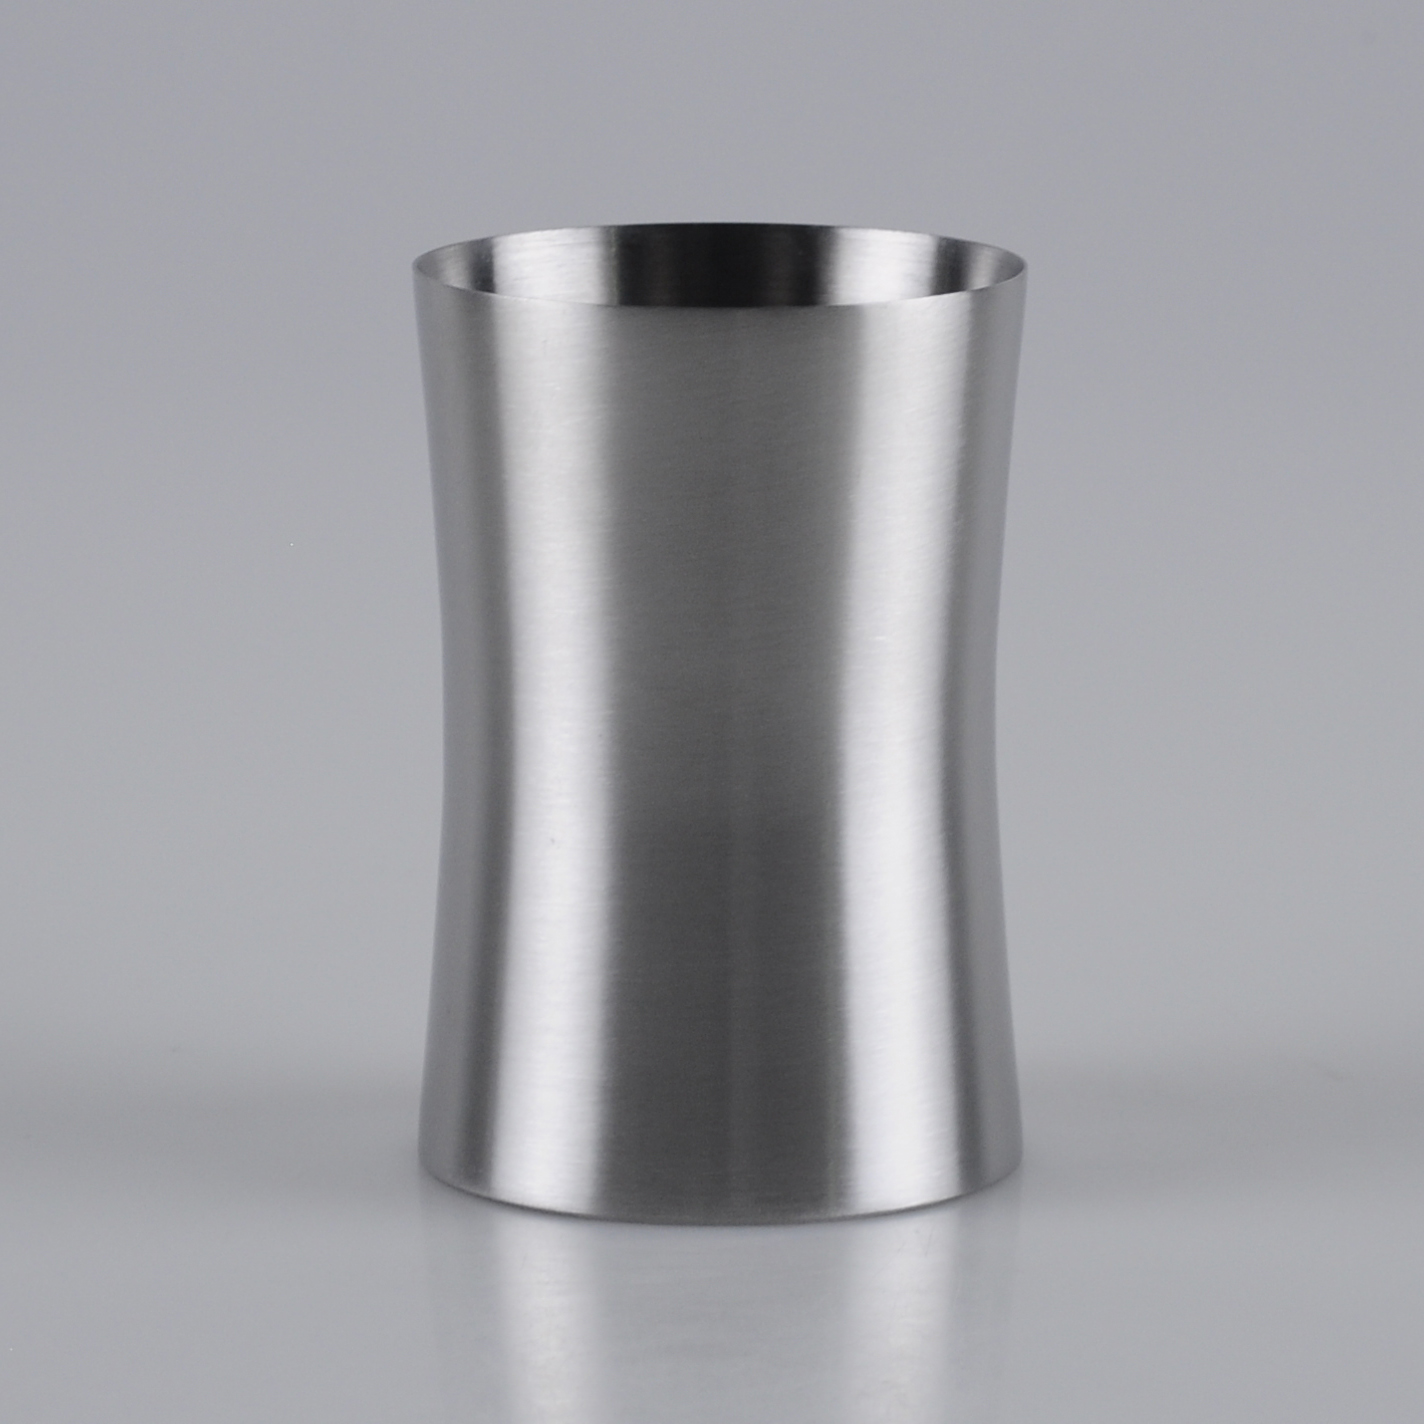 300ml-curve-shaped-stainless-steel-wine-cup (1)